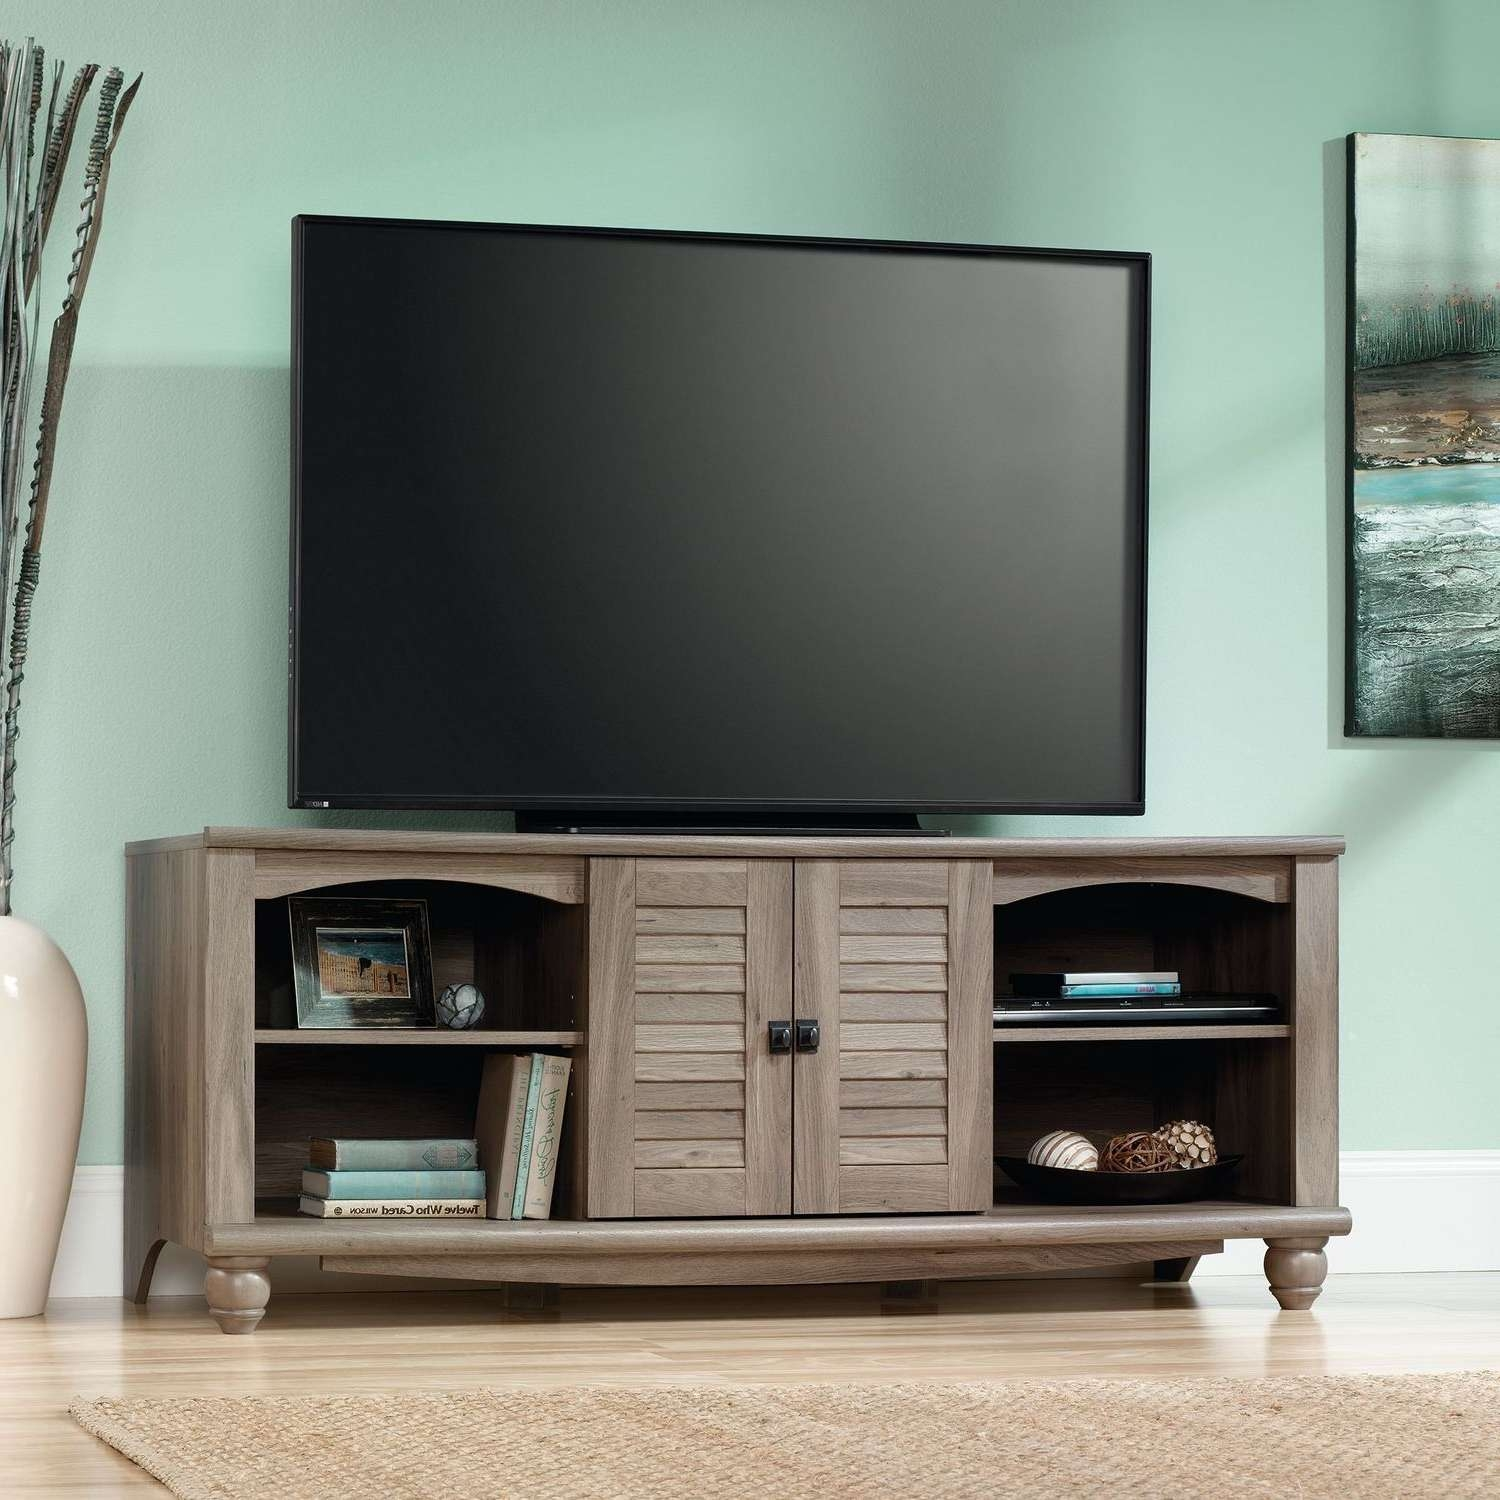 Awesome 84 Inch Tv Stand 41 With Additional Home Decorating Ideas Throughout 84 Inch Tv Stands (View 2 of 15)